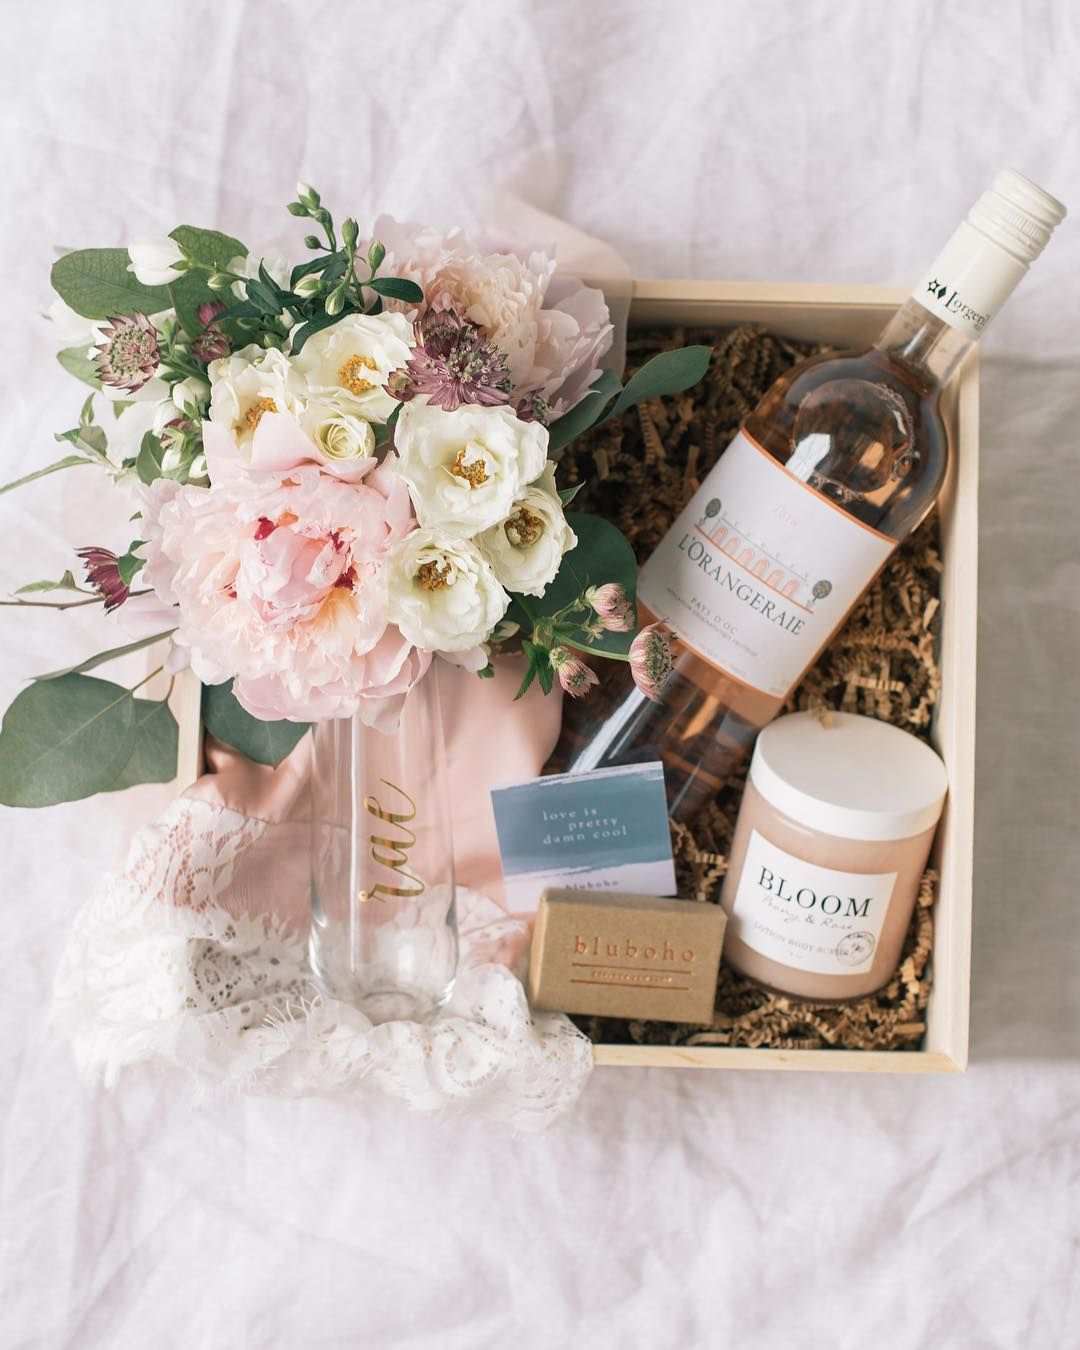 Post Wedding Gifts: Just A Little (okay A Lot) Excited About Today's Blog Post